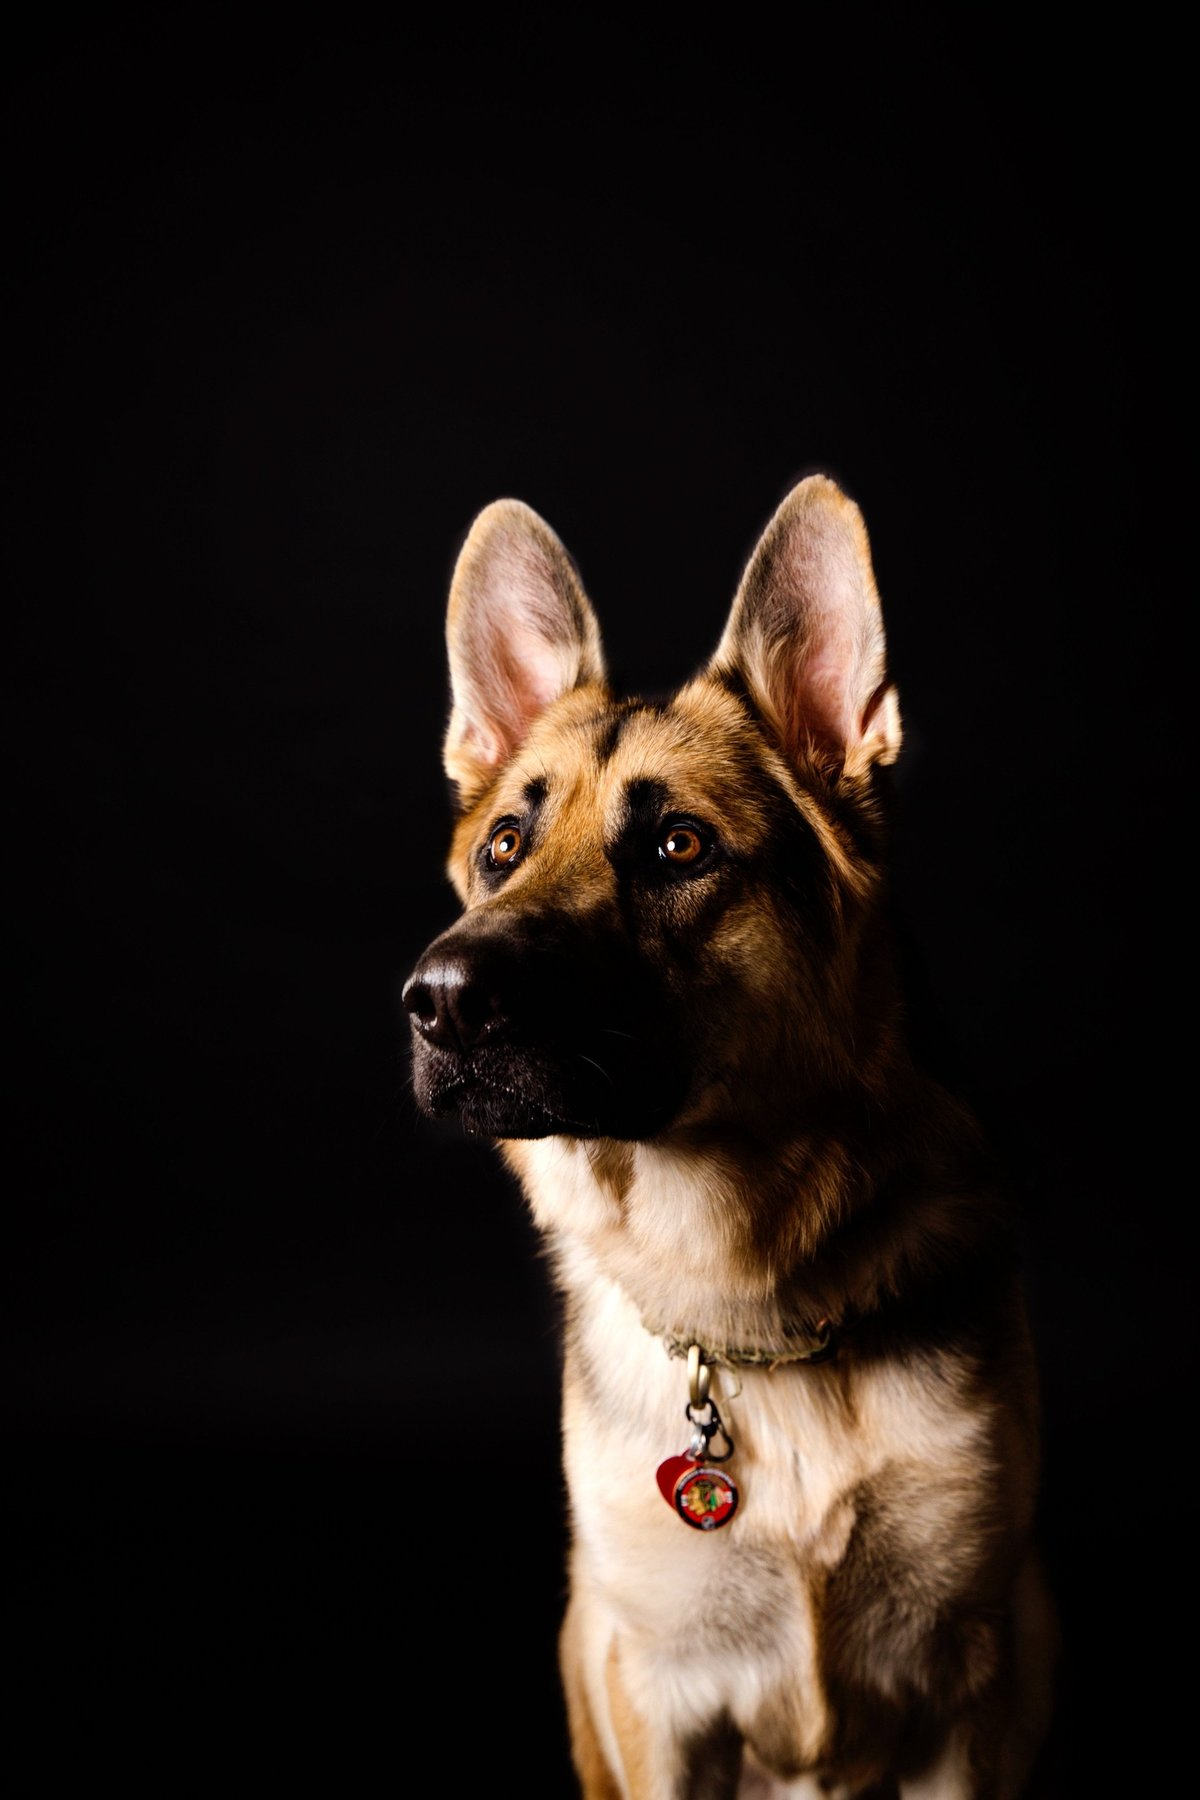 Alisa Messeroff Photography, Alisa Messeroff Photographer, Breckenridge Colorado Photographer, Professional Portrait Photographer, Pet Photographer, Pet Photography, Pet Portraits 4